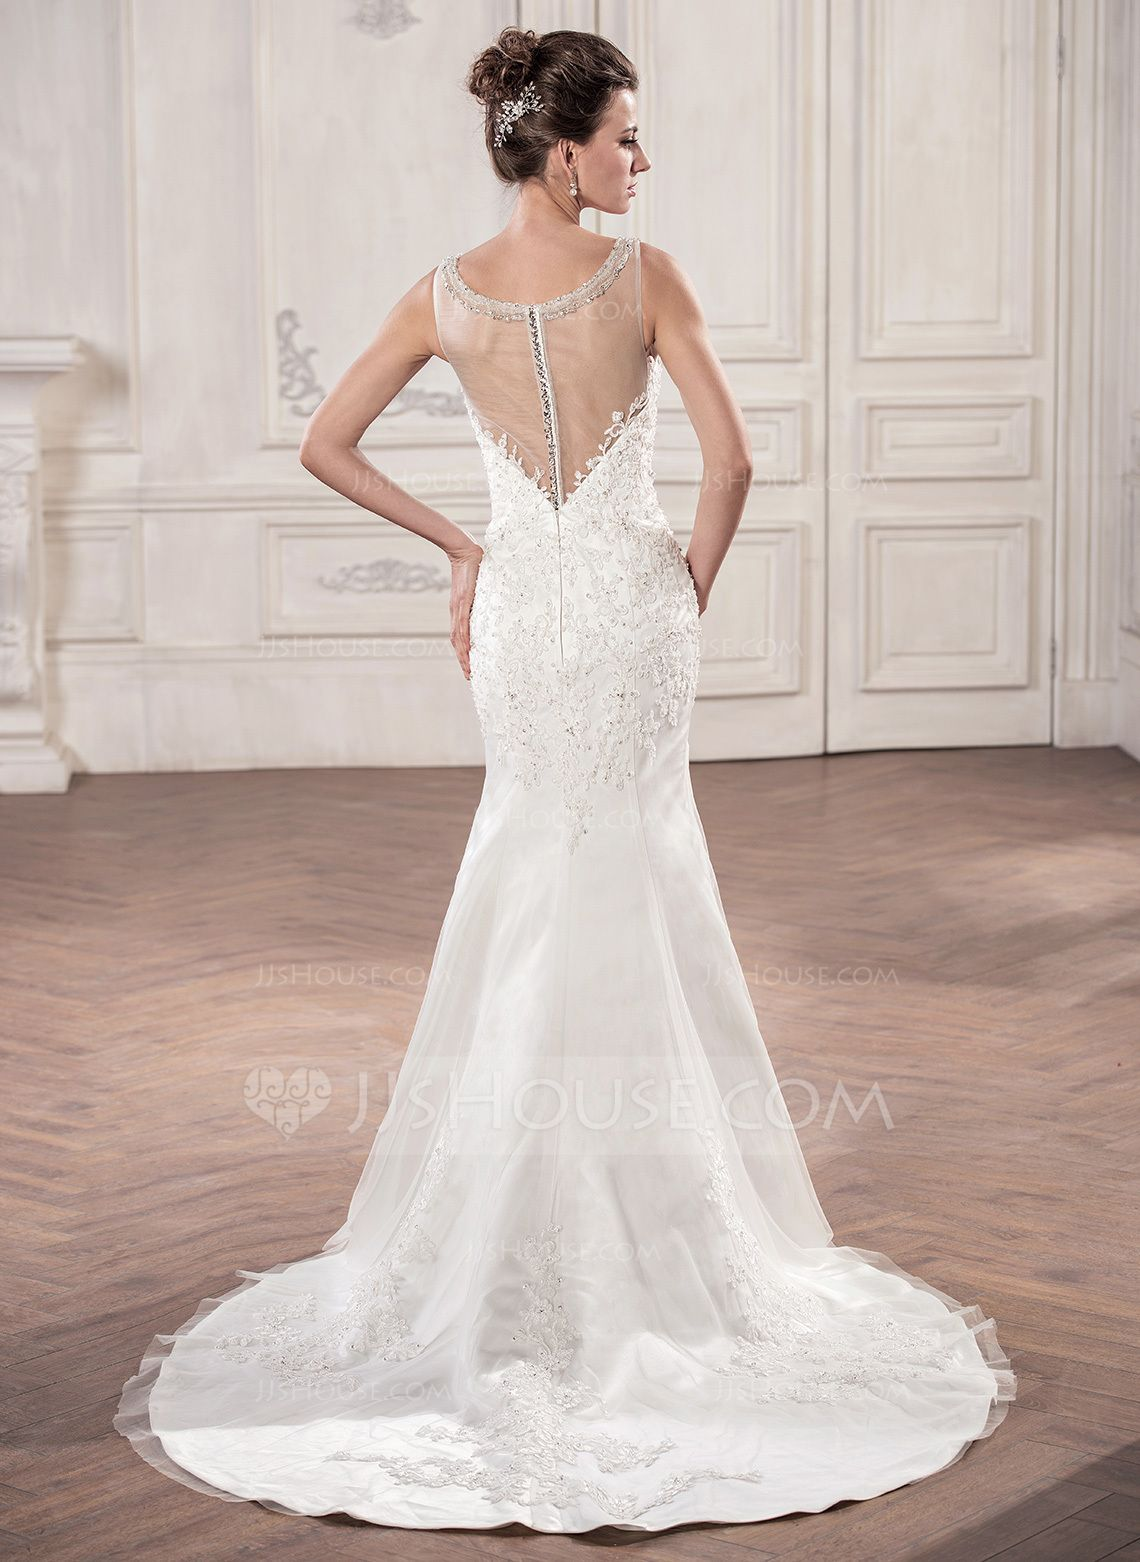 Trumpetmermaid vneck court train tulle wedding dress with beading